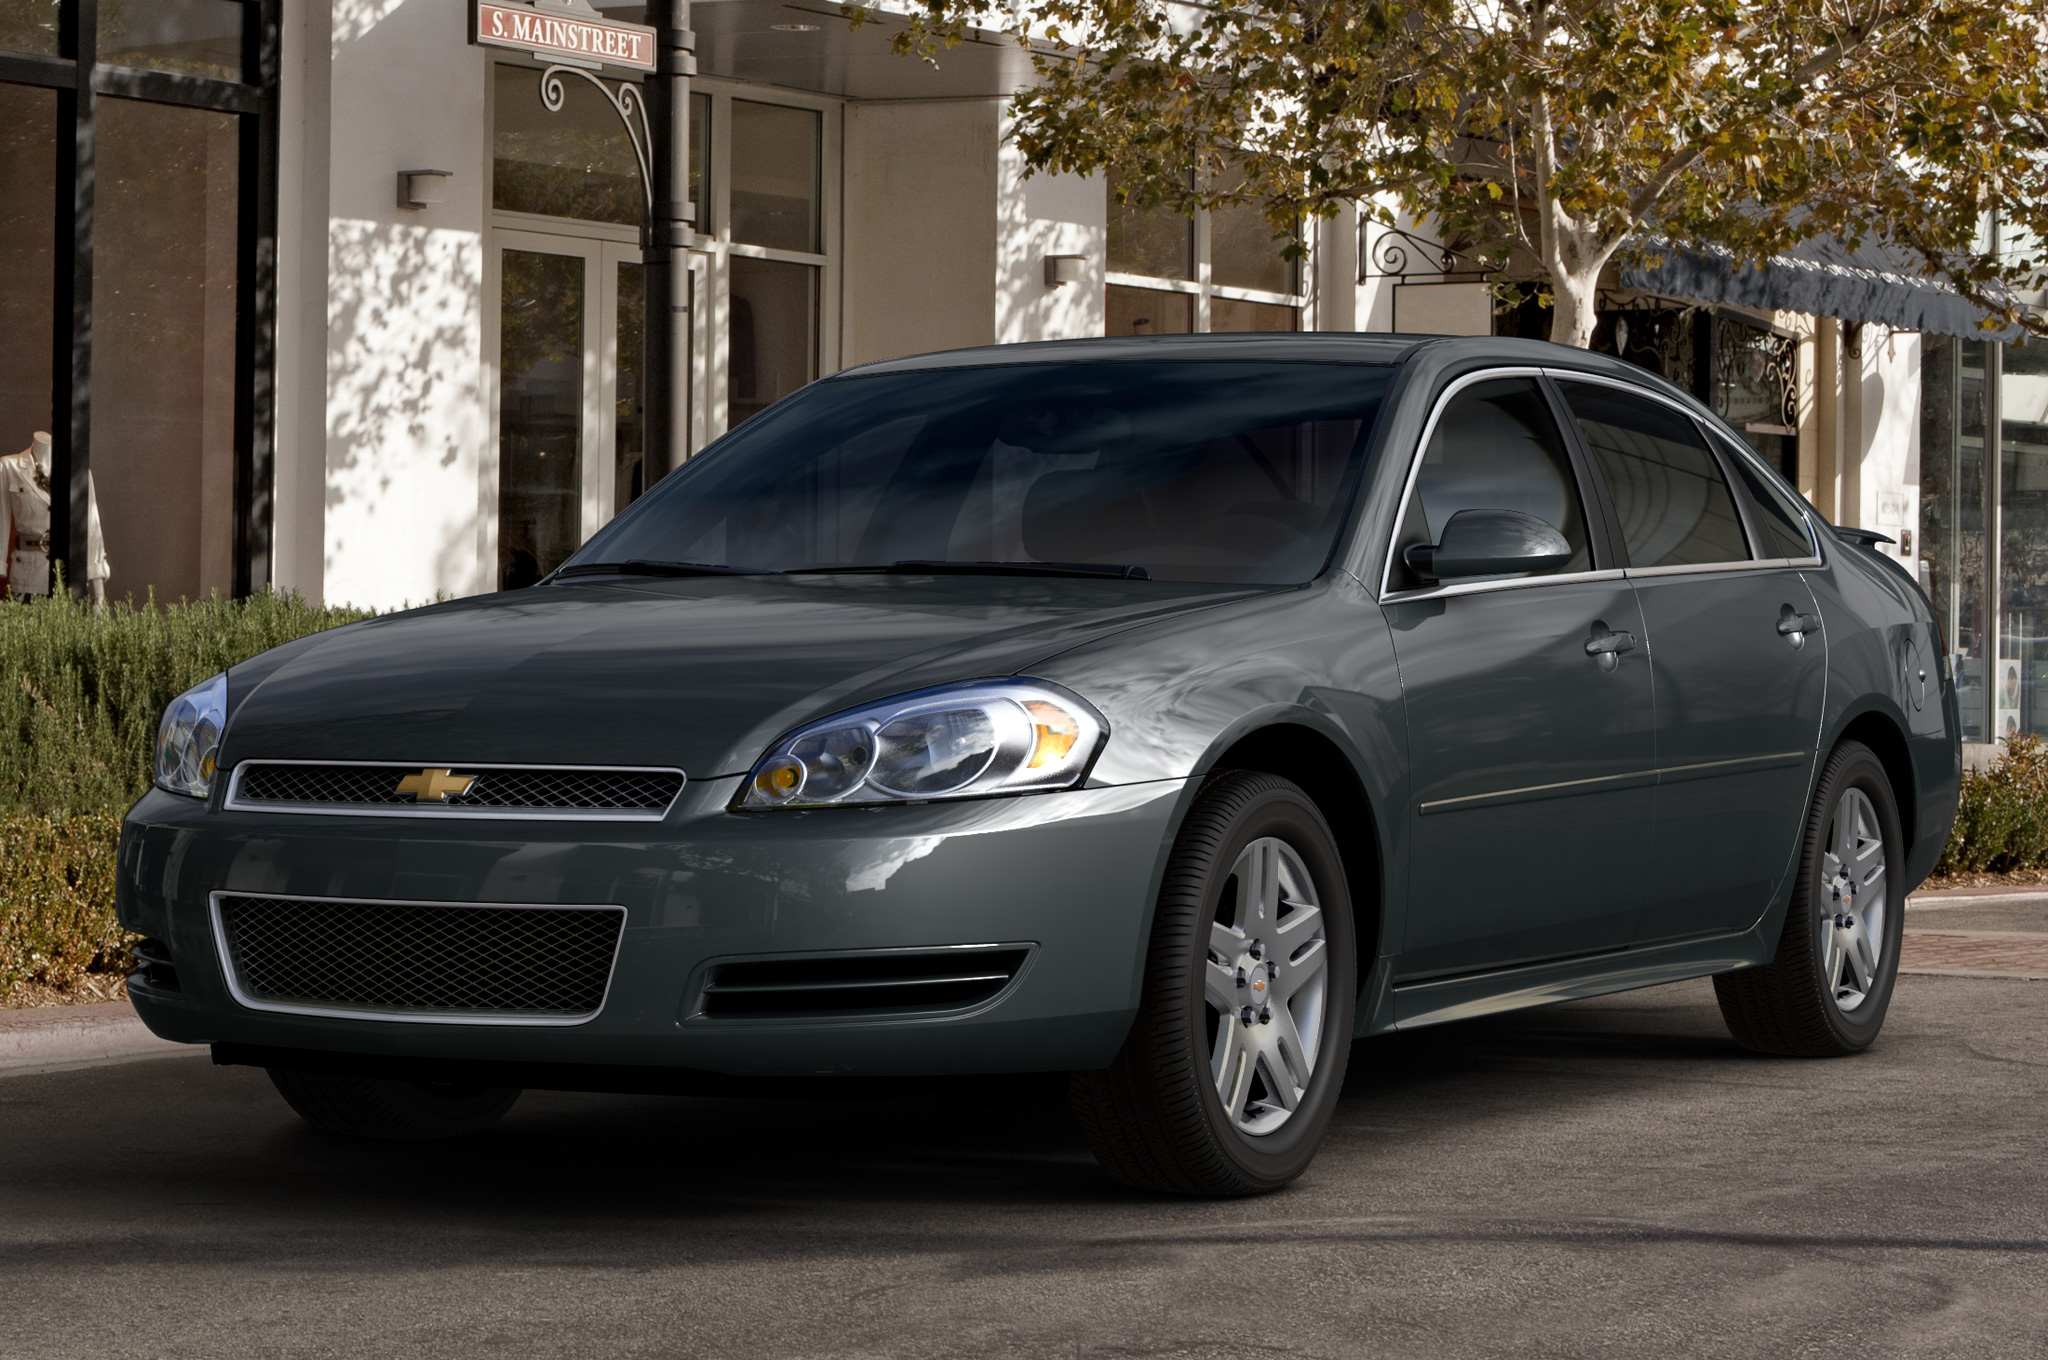 small resolution of chevrolet impala limited production extended to 2016 for fleet use